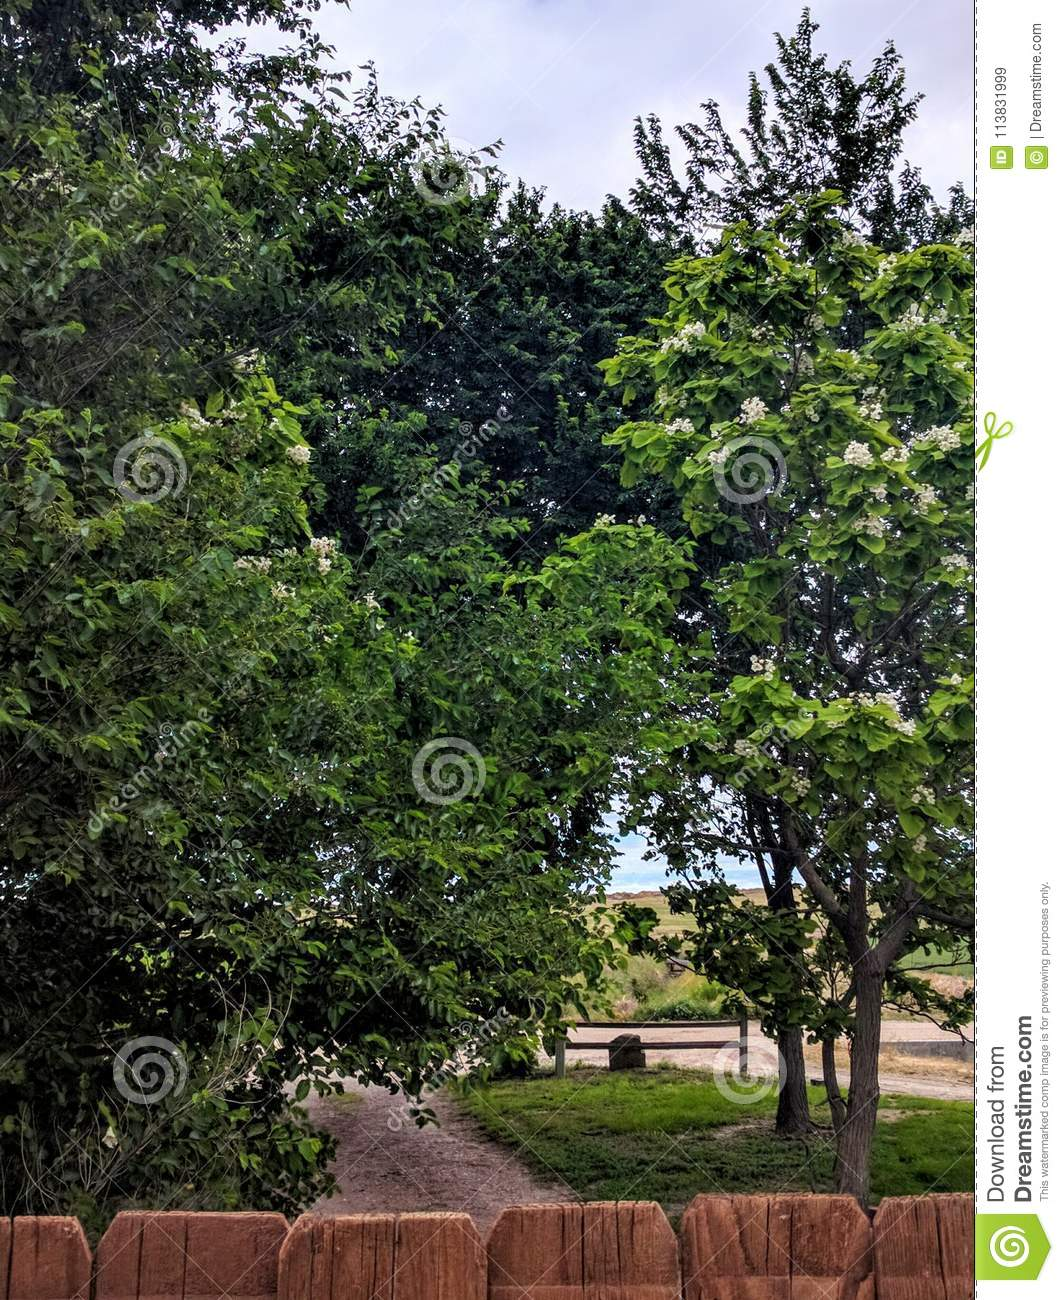 tree lined drive stock image image of drive tree lined 113831999